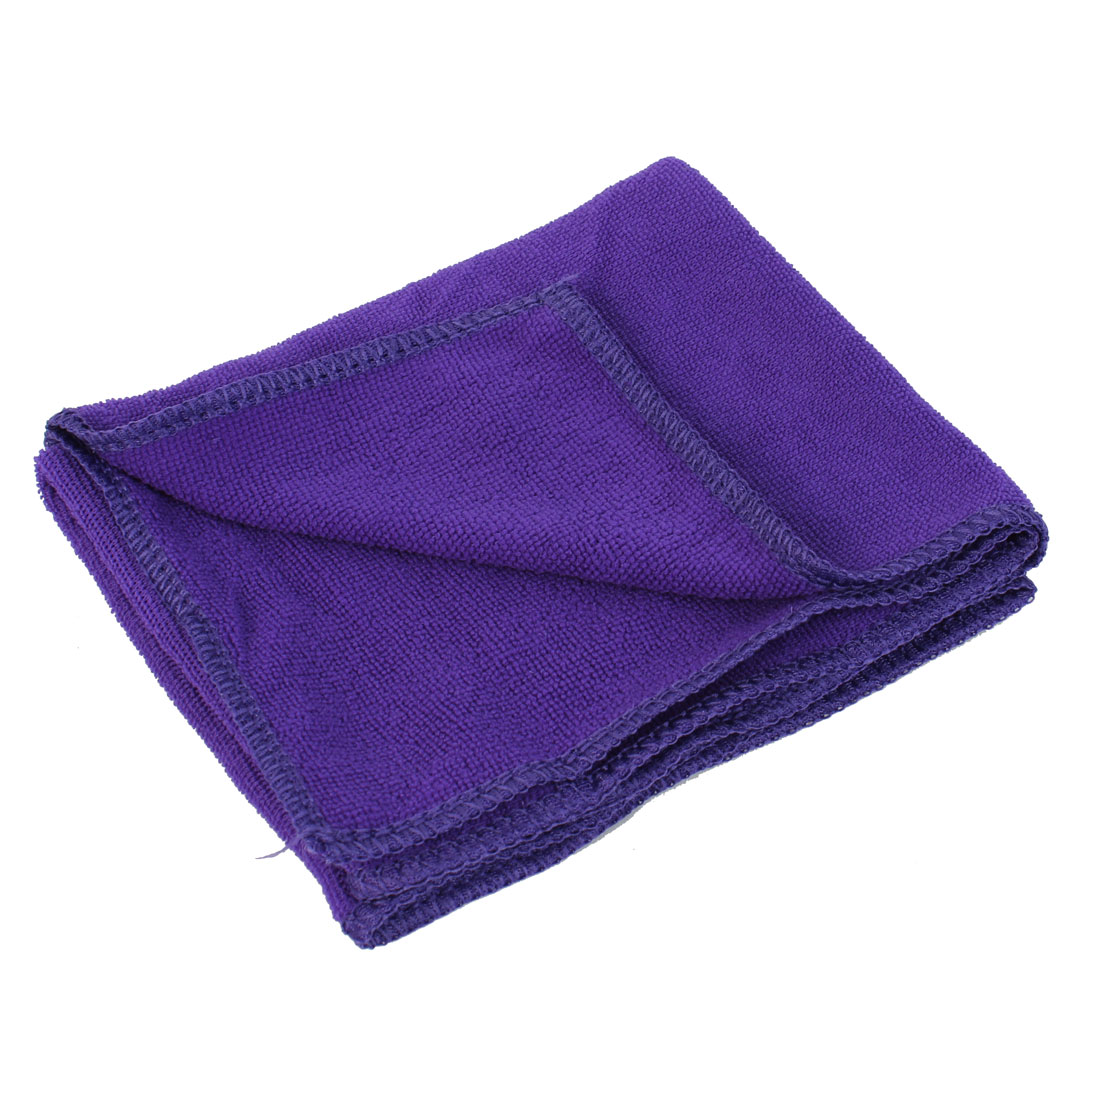 70cm x 30cm Purple Microfiber Water Absorbent Hand Drying Facial Bath Shower Towel Sheet Washcloth Swimwear